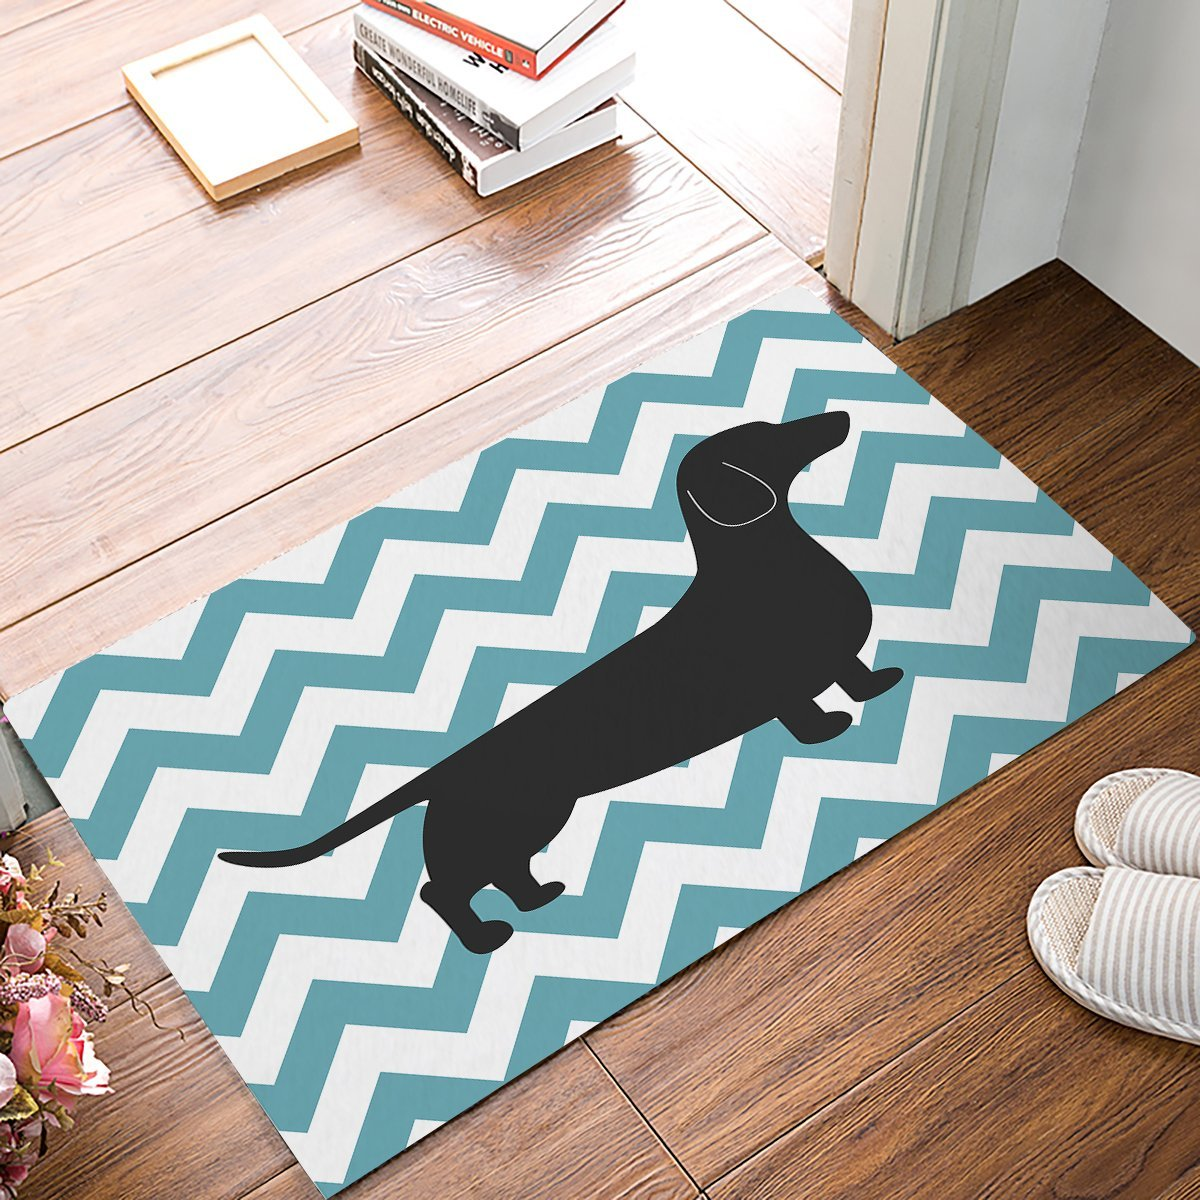 White Kitchen Floor Mats: Aliexpress.com : Buy Blue And White Chevron Dachshund Door